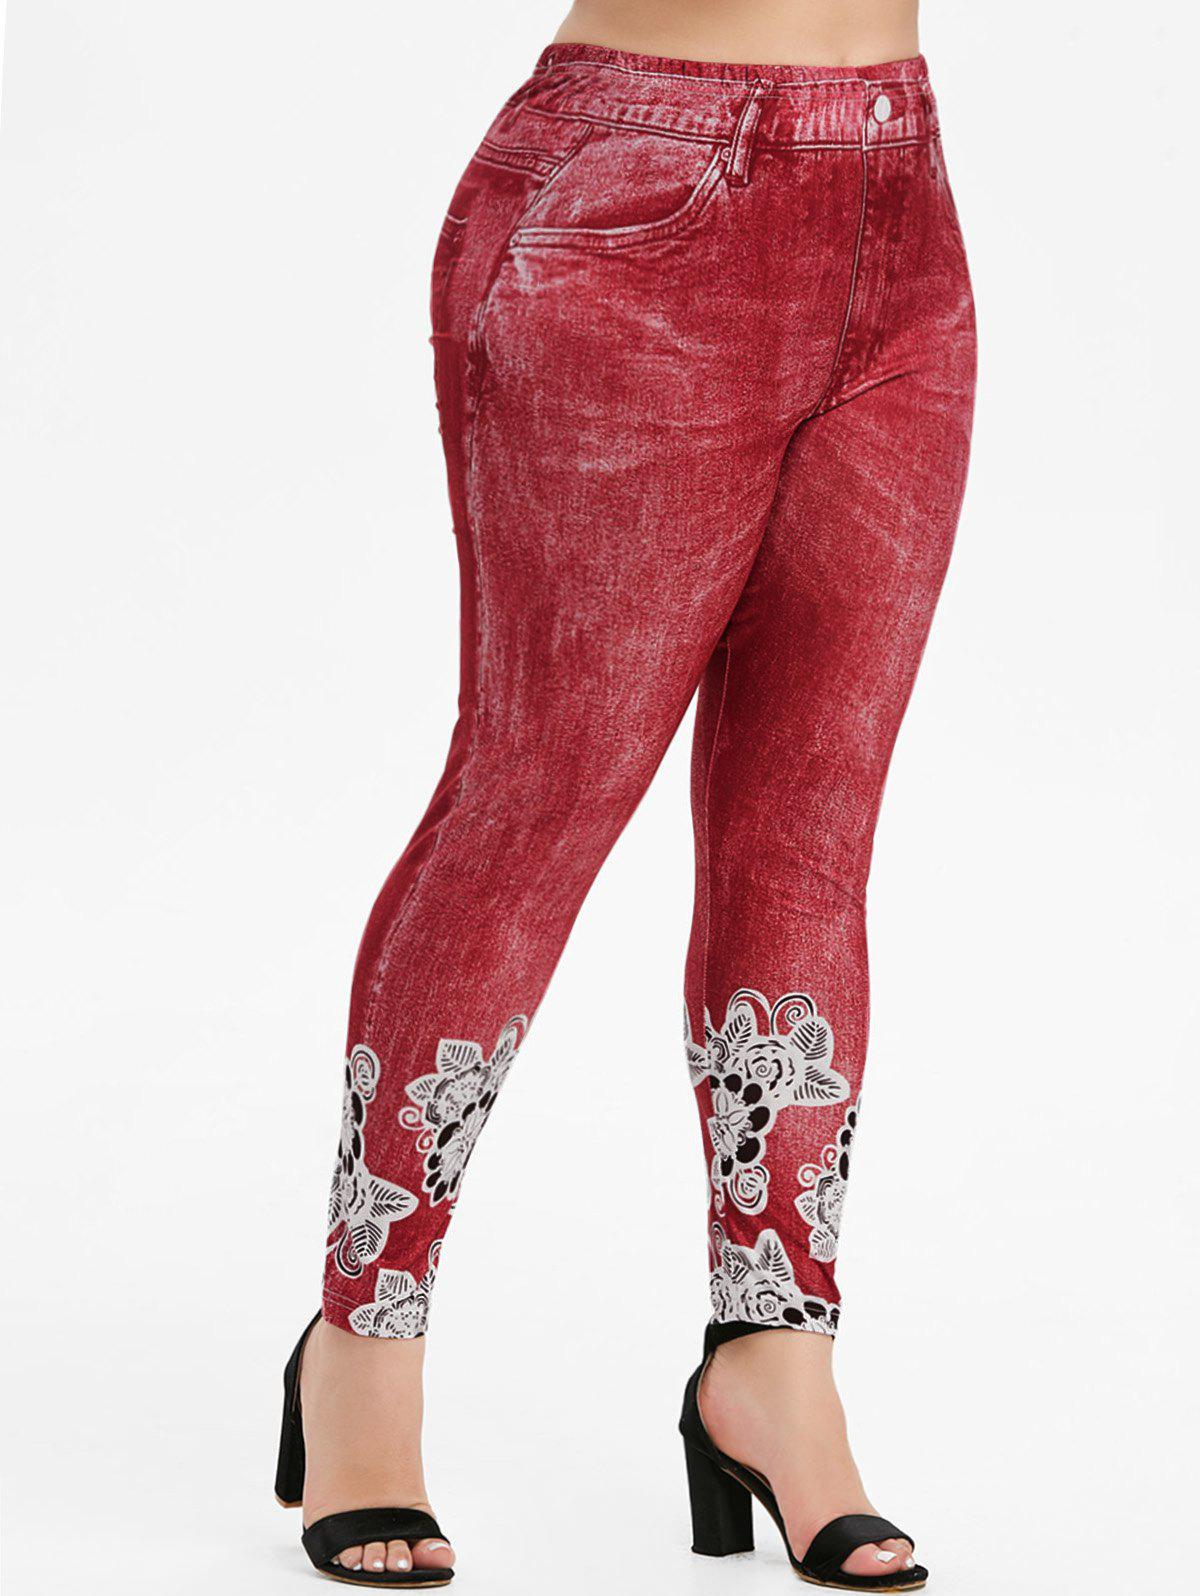 Floral 3D Printed High Waisted Pull On Plus Size Jeggings - RED 3X